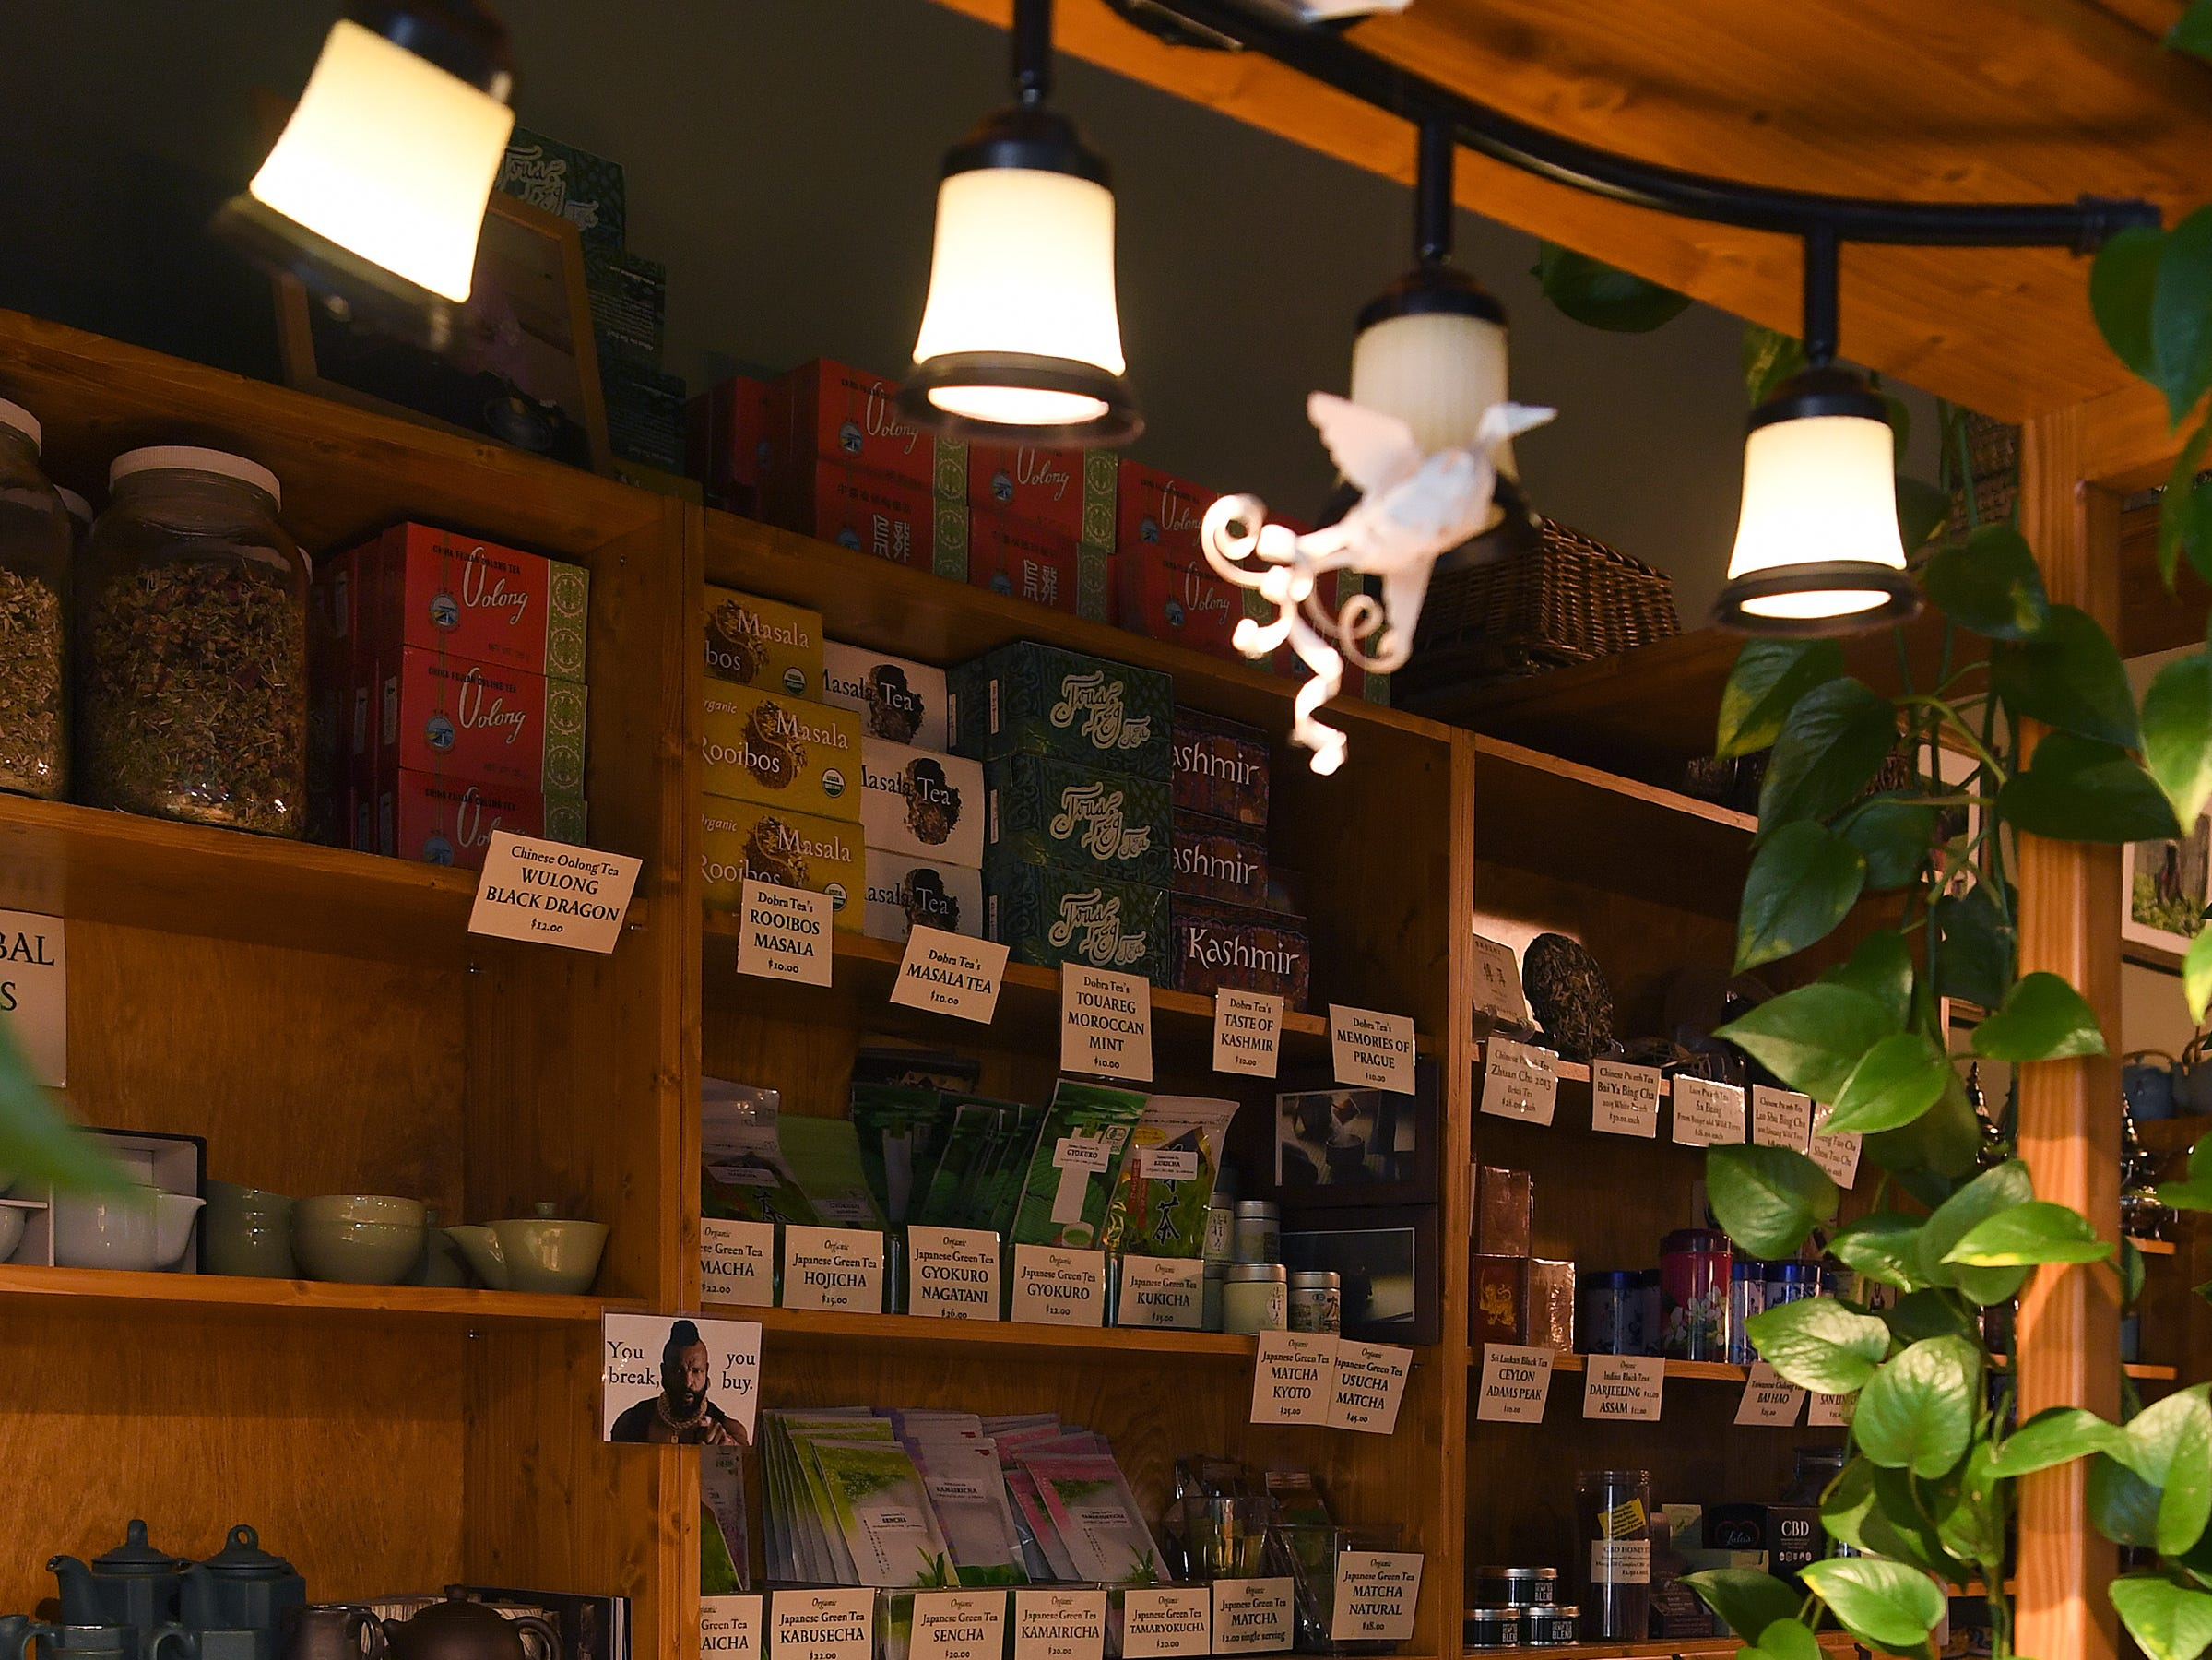 Dobra Tea's West Asheville location offers a full menu of vegetarian food choices, teas, and desserts.